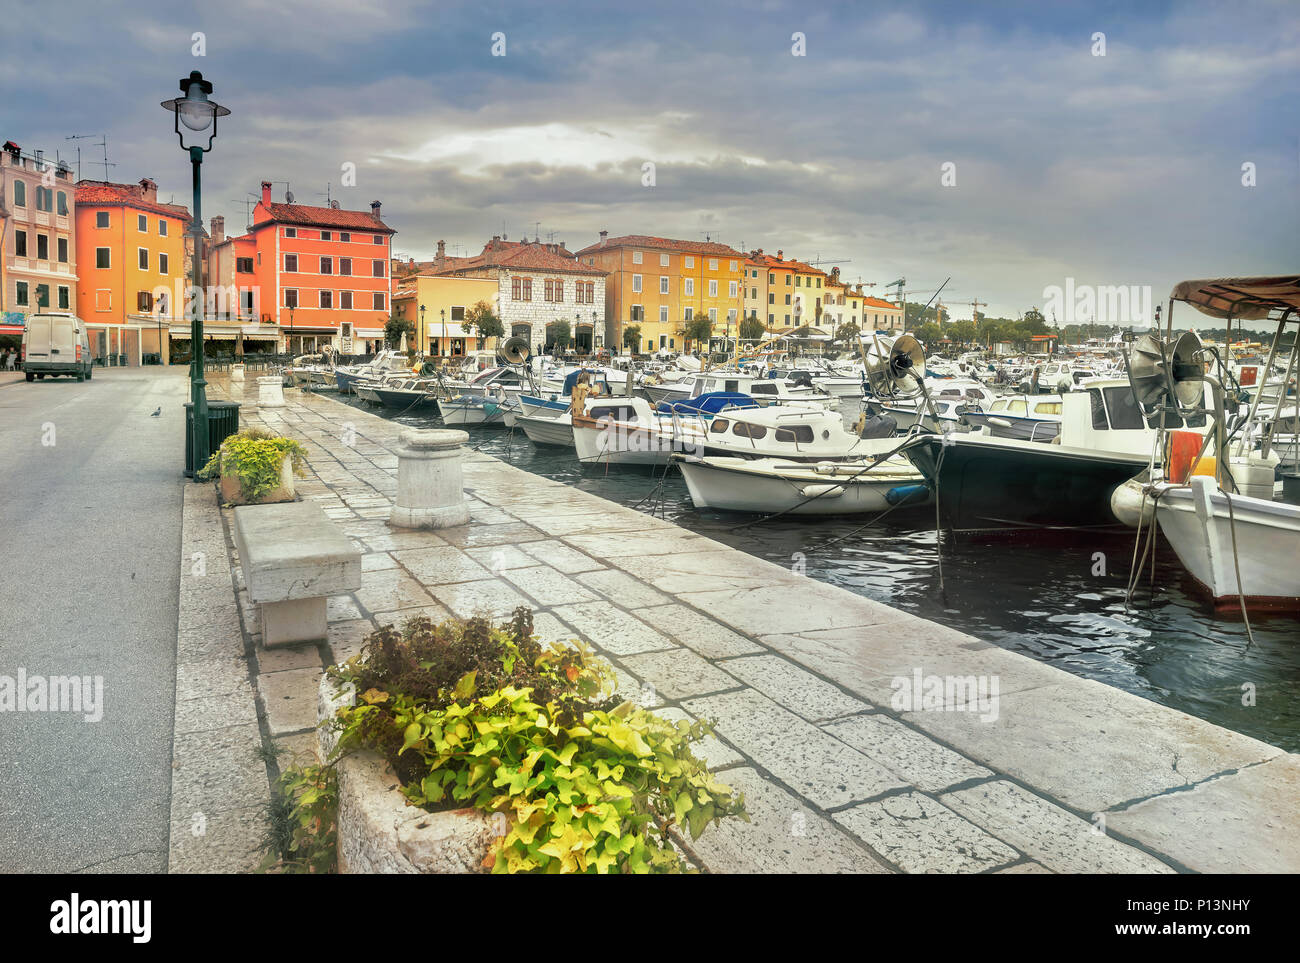 Cityscape with seafront and marina in old town Rovinj. Croatia, Istrian Peninsula, Europe - Stock Image